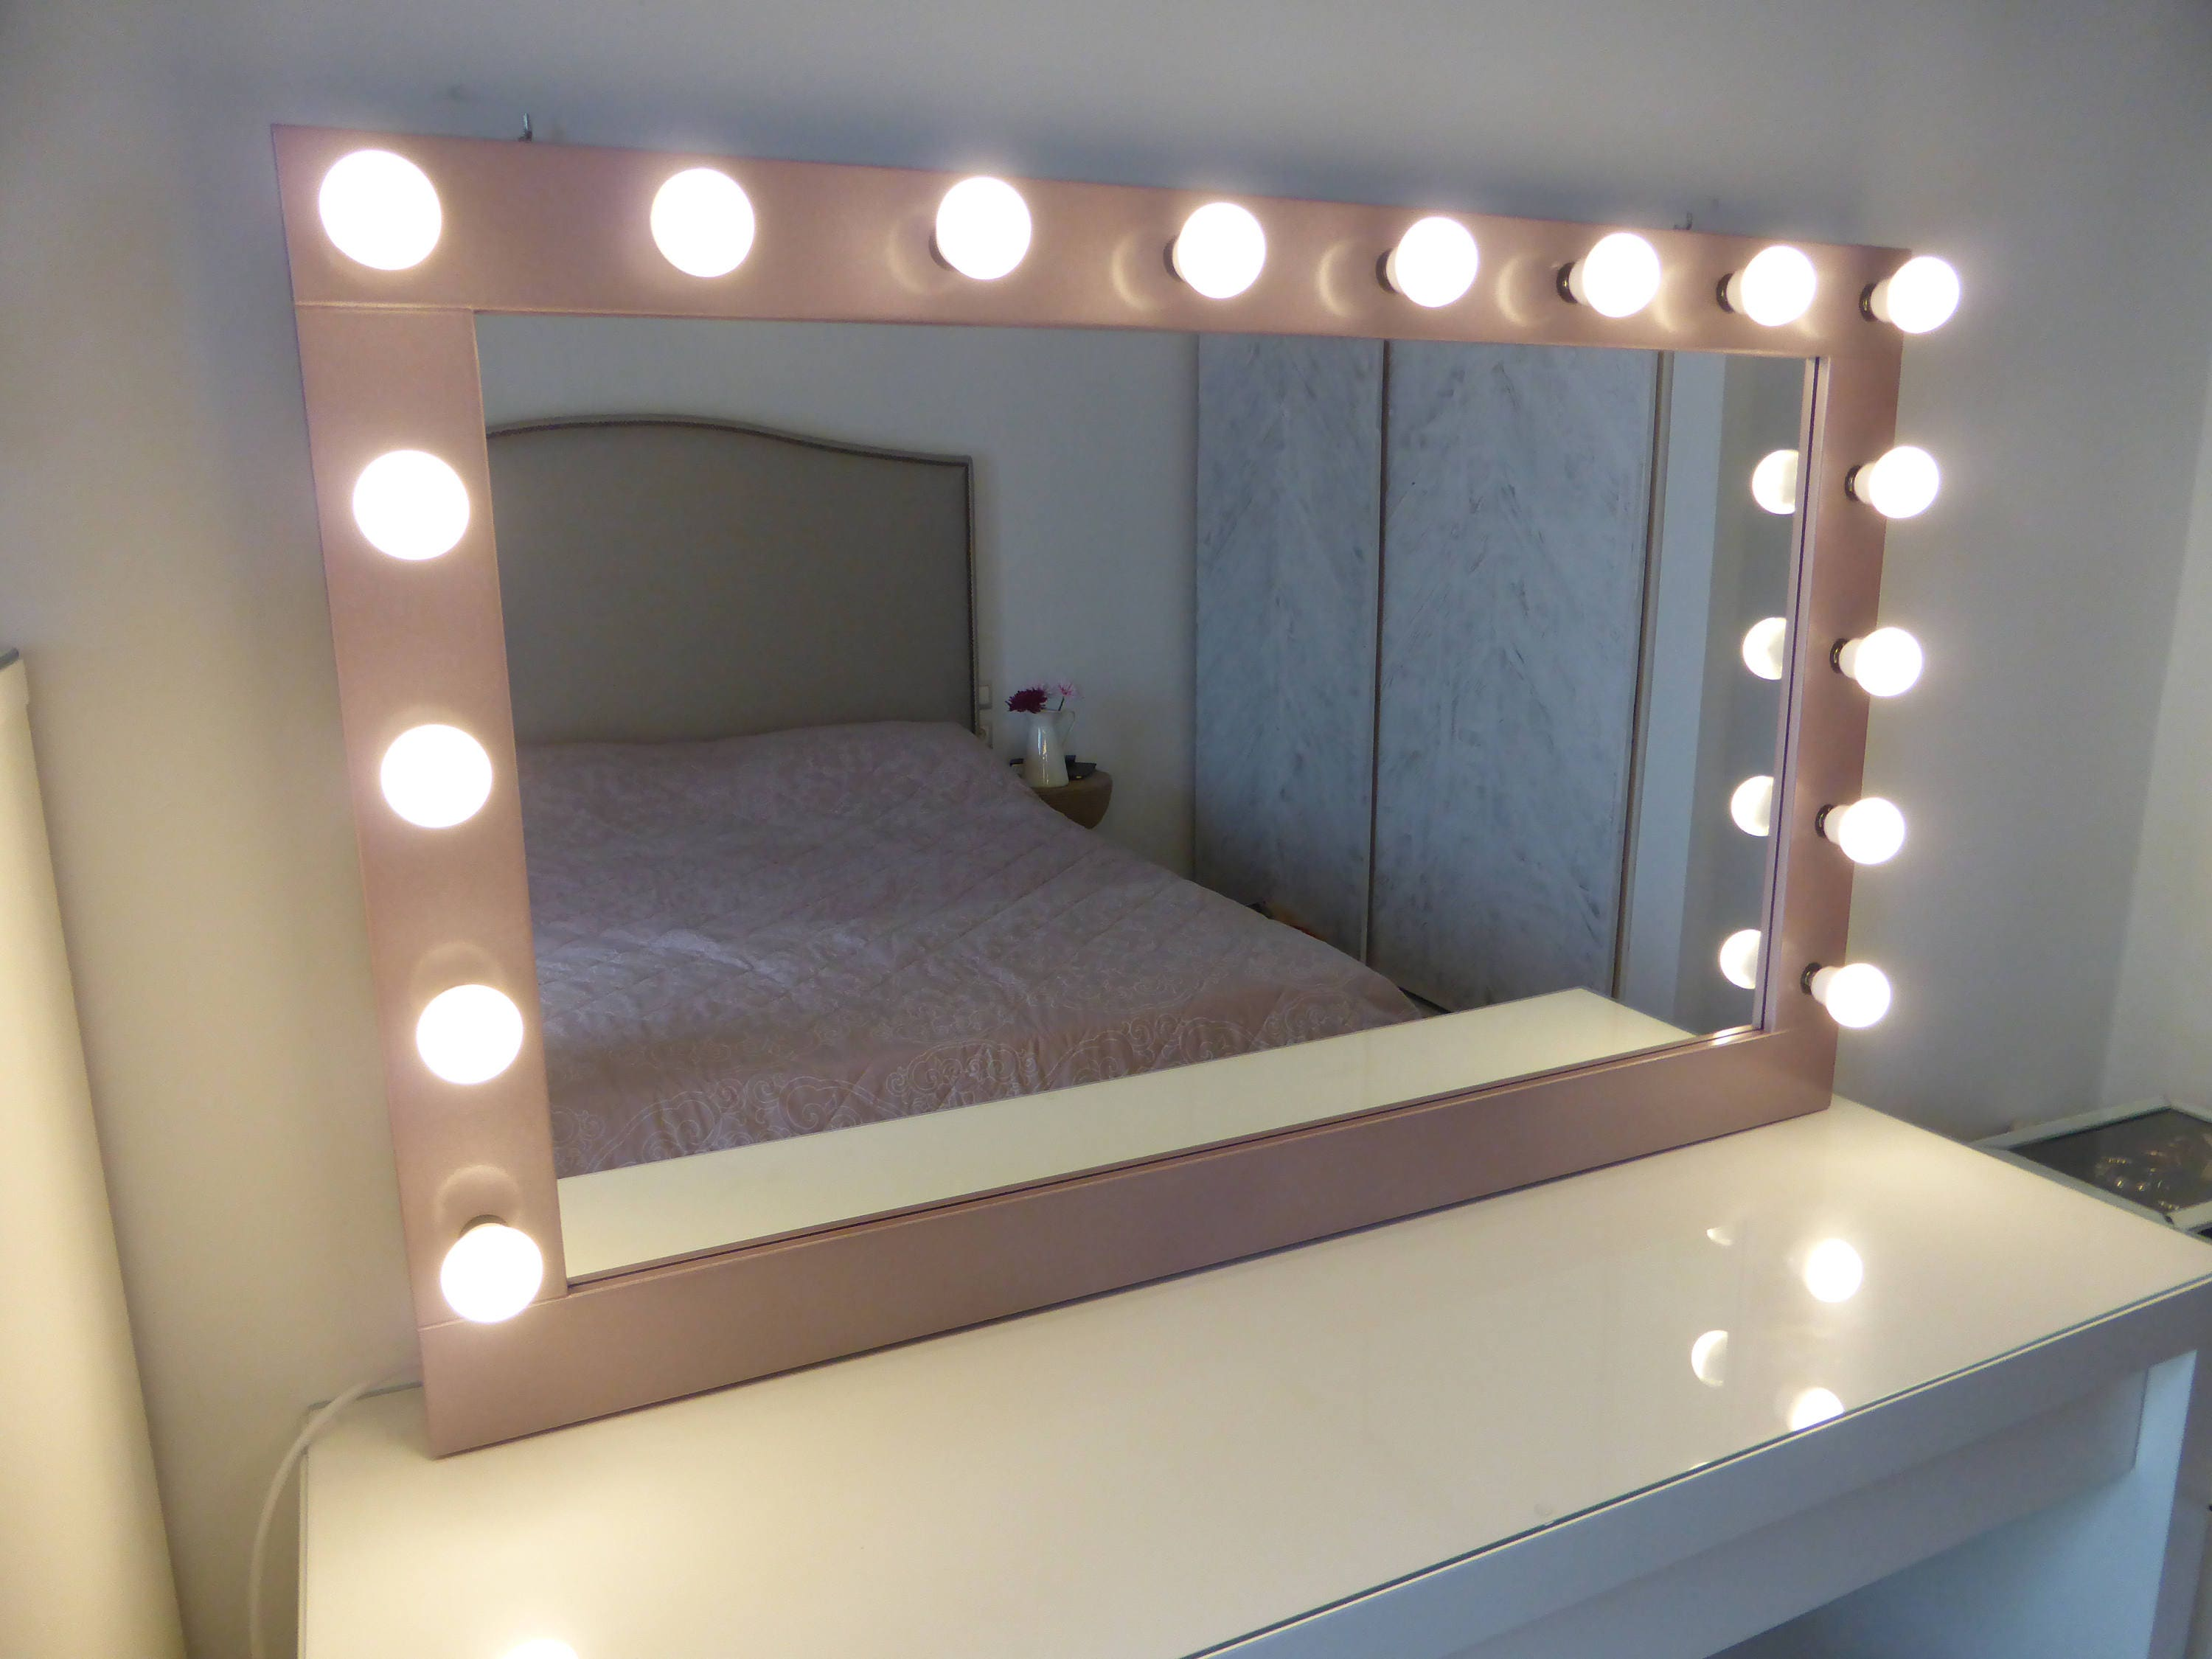 Xl Hollywood Mirror 43 X 27 Rose Gold